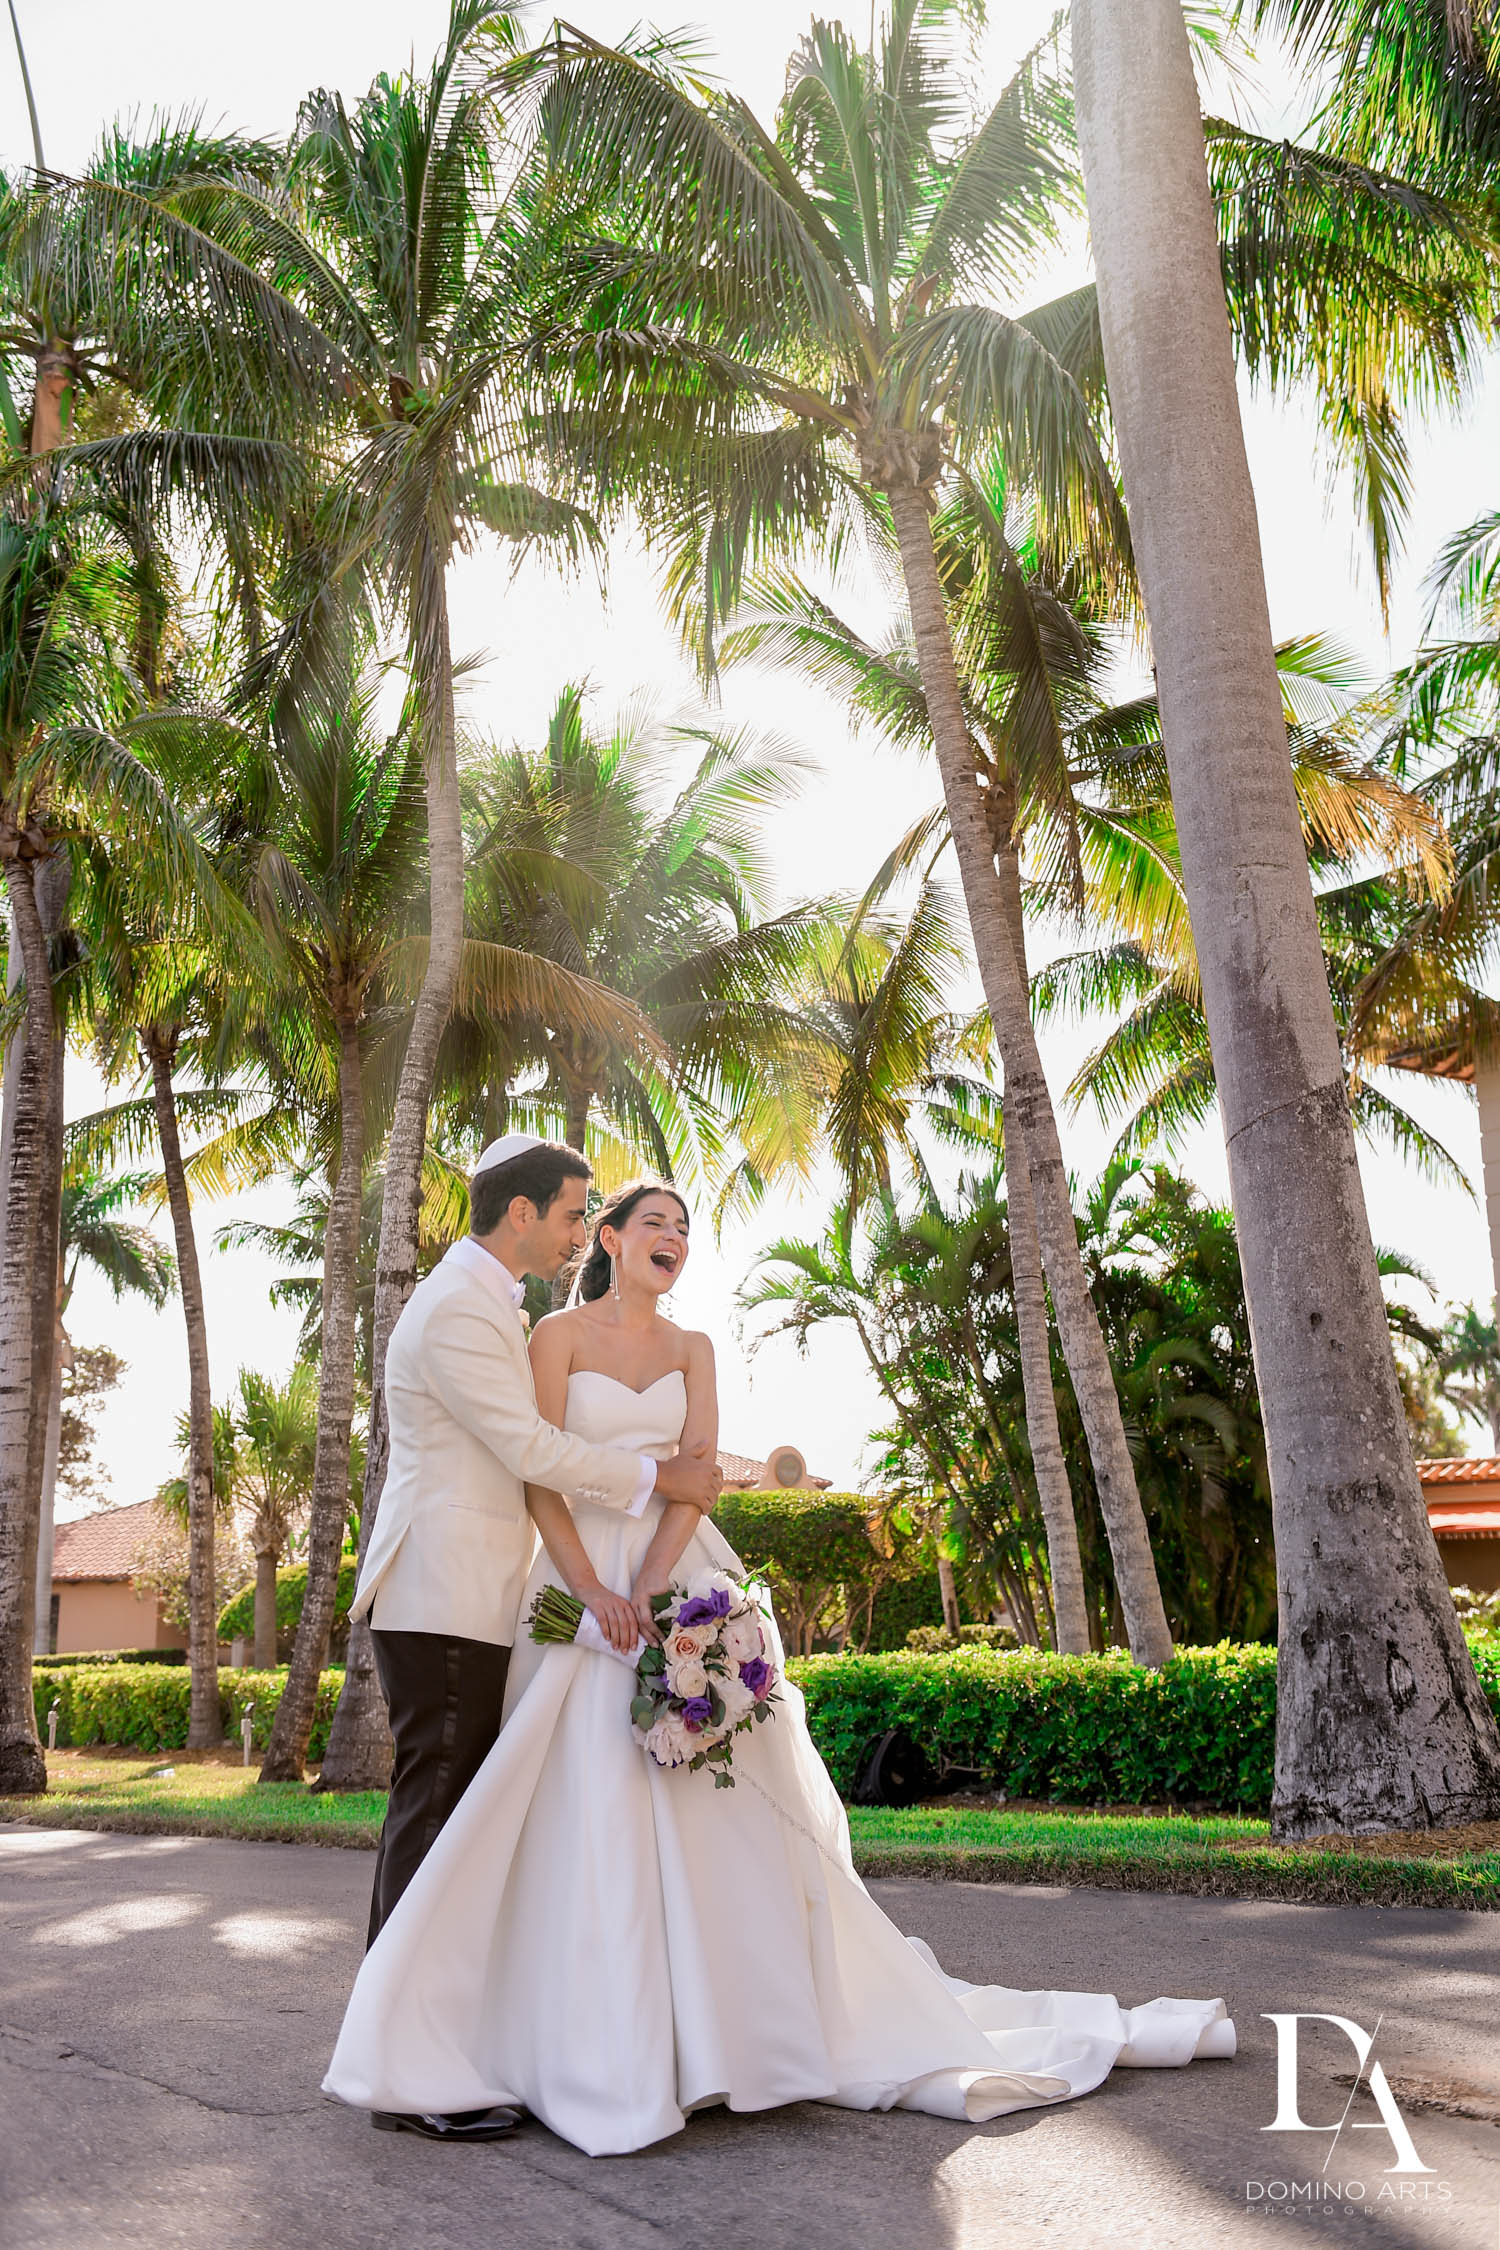 bride and groom at Modern Luxury Jewish Wedding Photography at Biltmore Miami Coral Gables